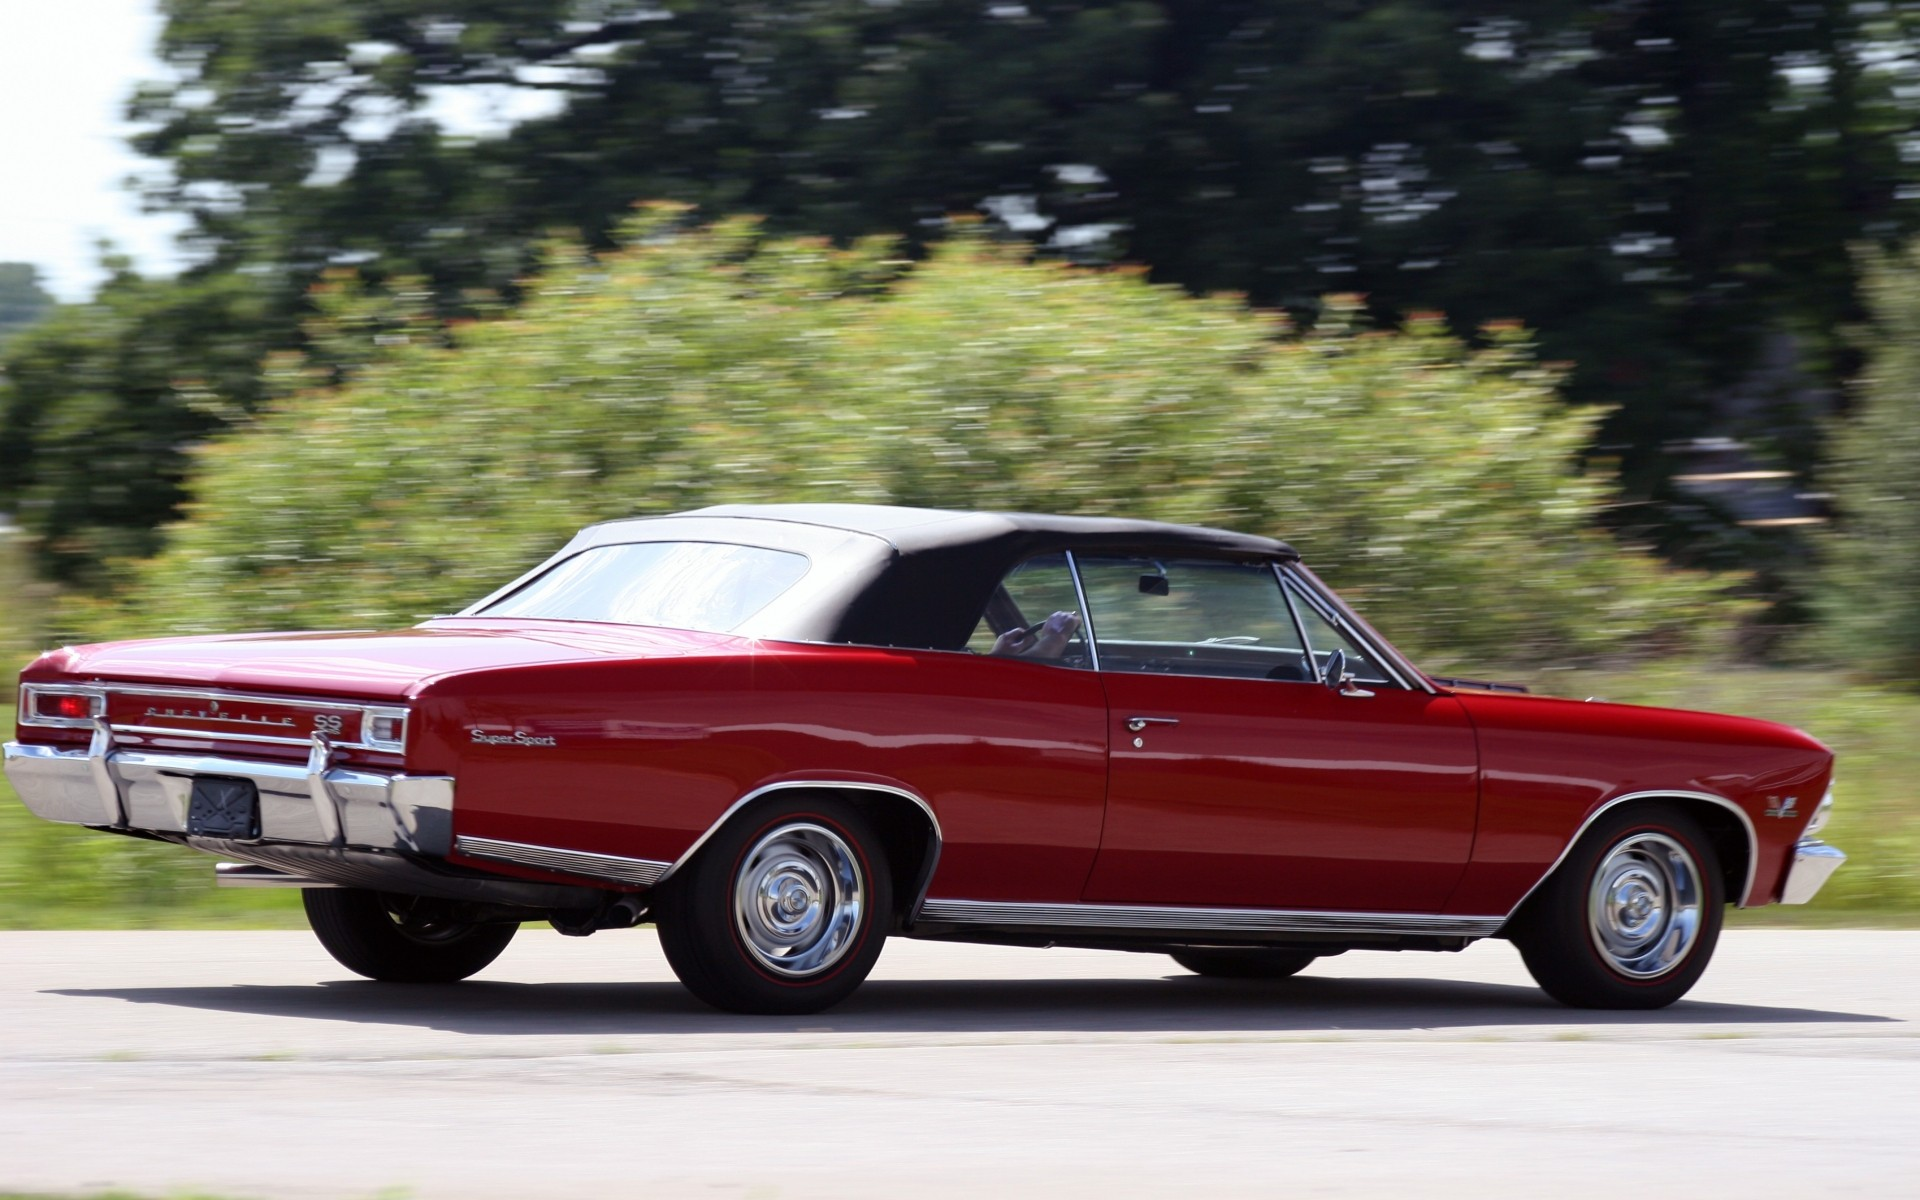 Wallpapers Chevy Chevelle Ss 736 X 552 89 Kb Jpeg HD Wallpapers 1920x1200